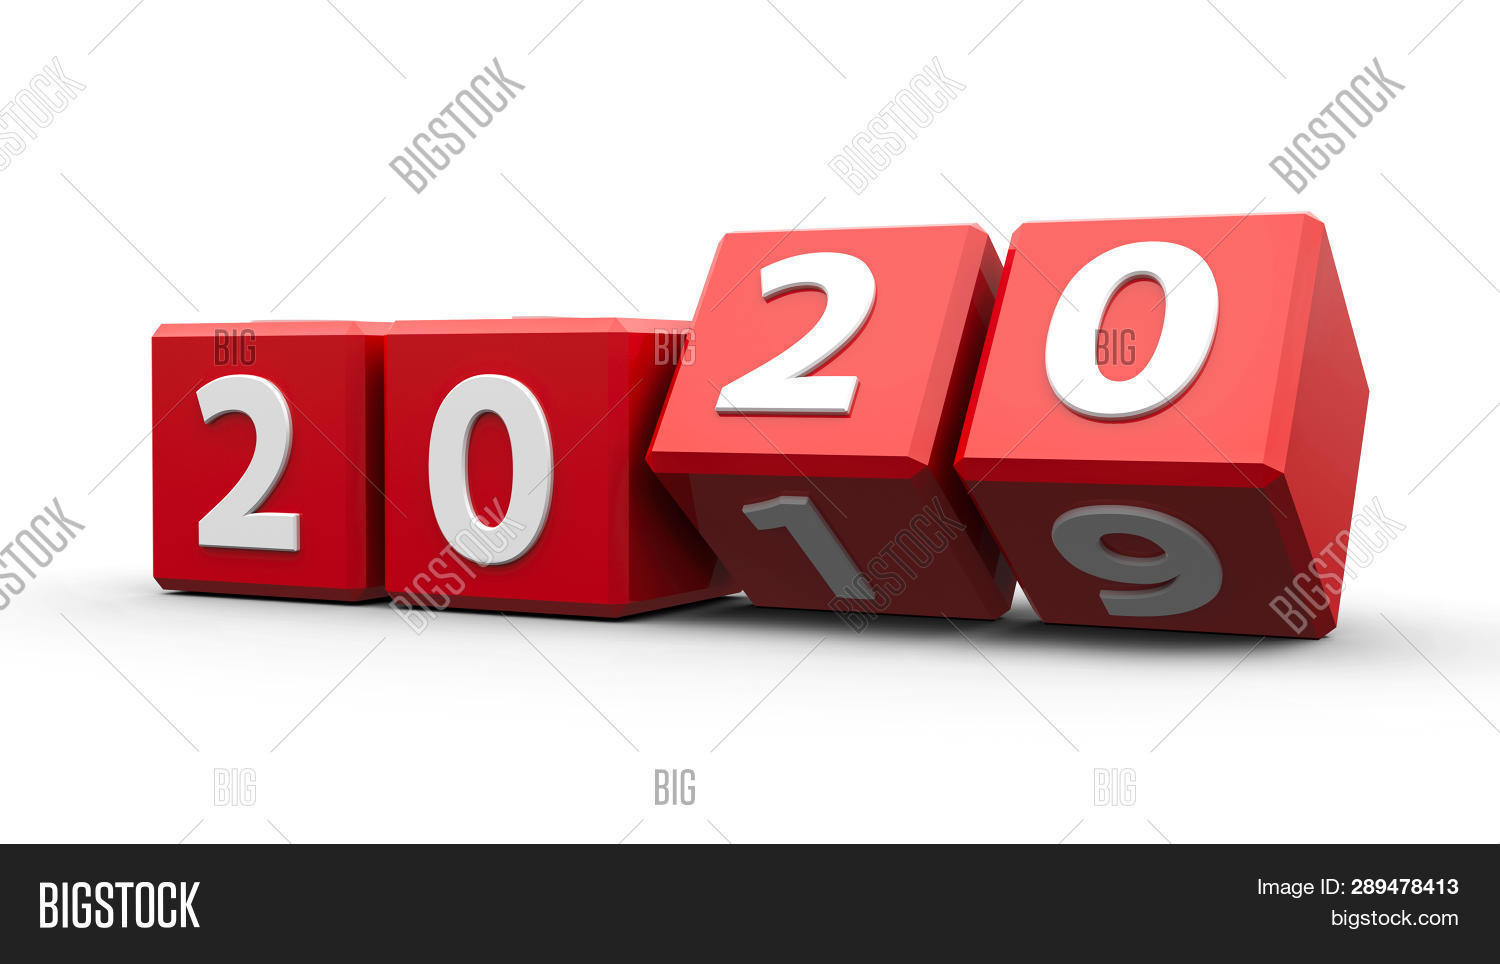 2019,2020,3d,background,box,brilliance,business,calendar,celebration,change,christmas,colors,concept,creative,cube,date,design,dice,dimensional,end,eve,event,figure,future,greeting,happy,holiday,illustration,increase,new,newyear,number,planning,red,render,shape,shiny,sign,start,symbol,turn,white,winter,xmas,year